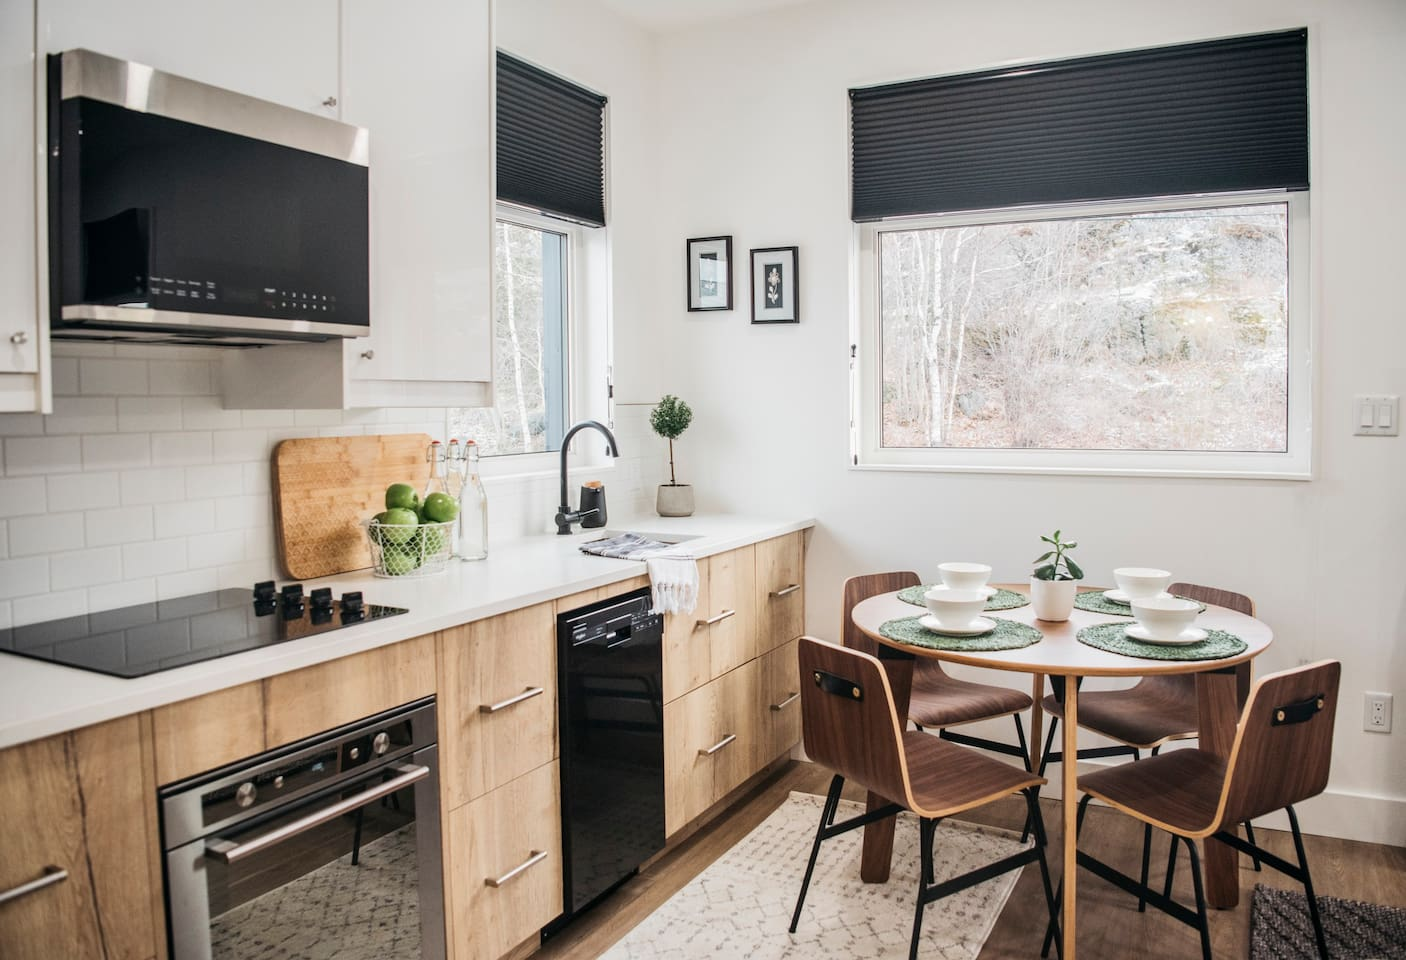 The modern kitchen has quartz counter tops, a stove top, a wall oven, a microwave and a dish washer.  The large windows make the kitchen bright and you can view the surrounding area while cooking!